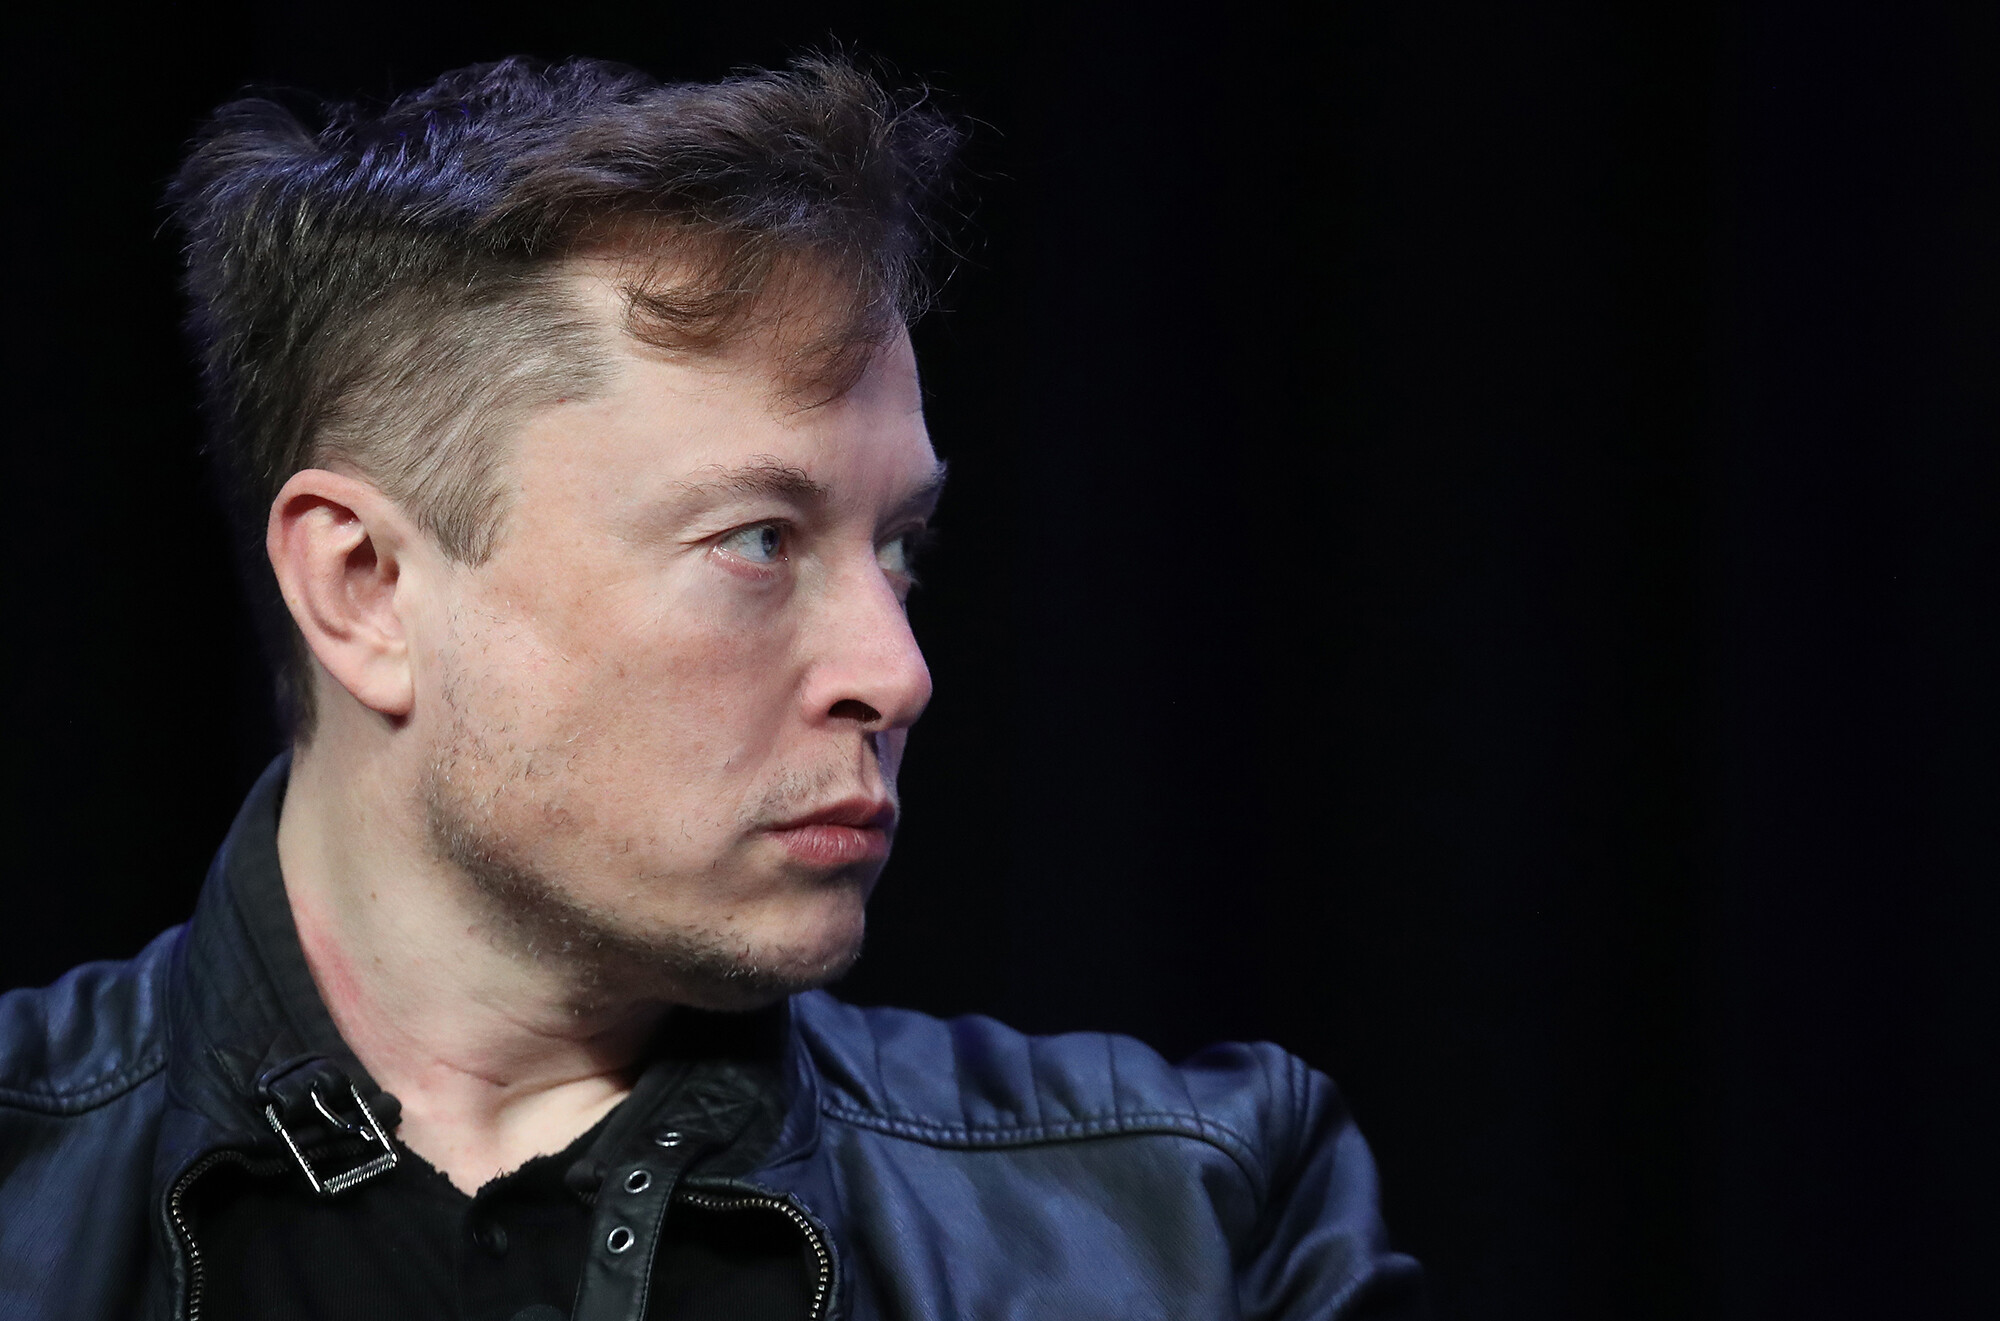 <i>Win McNamee/Getty Images</i><br/>Shares of Tesla were down 3% in early afternoon trading July 27